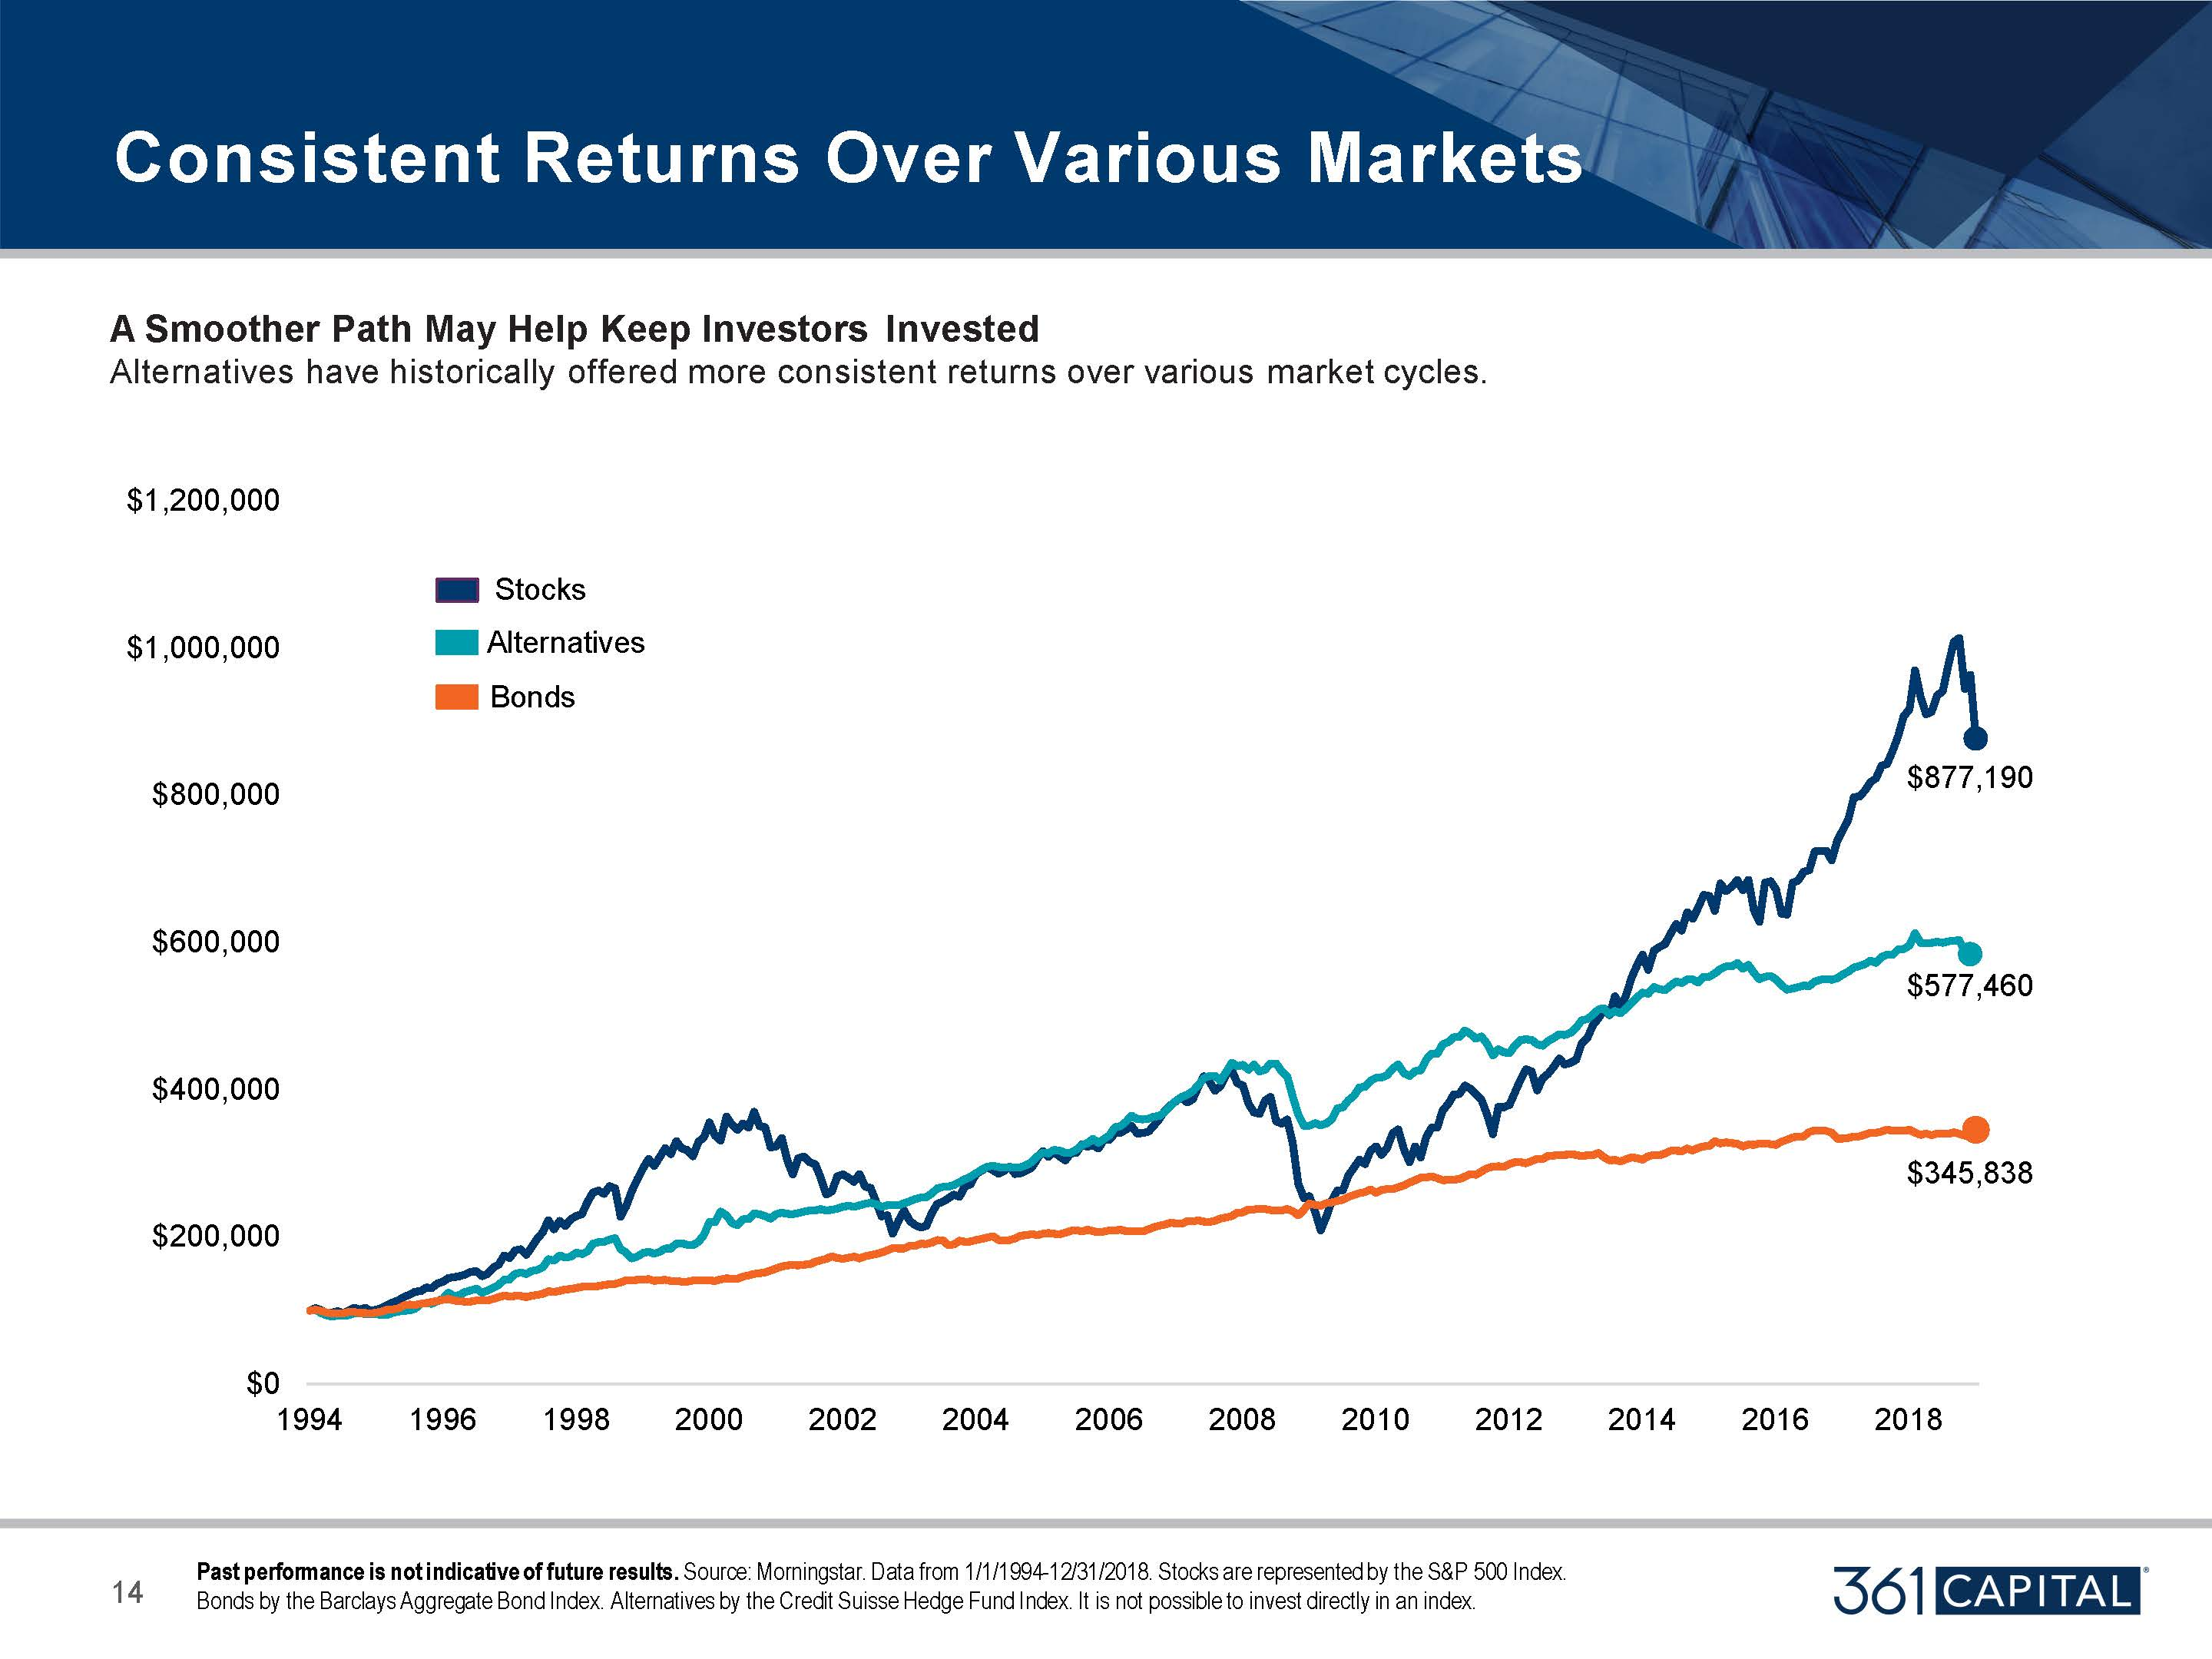 Consistent Returns Over Various Markets: Stocks, Alternatives, Bonds